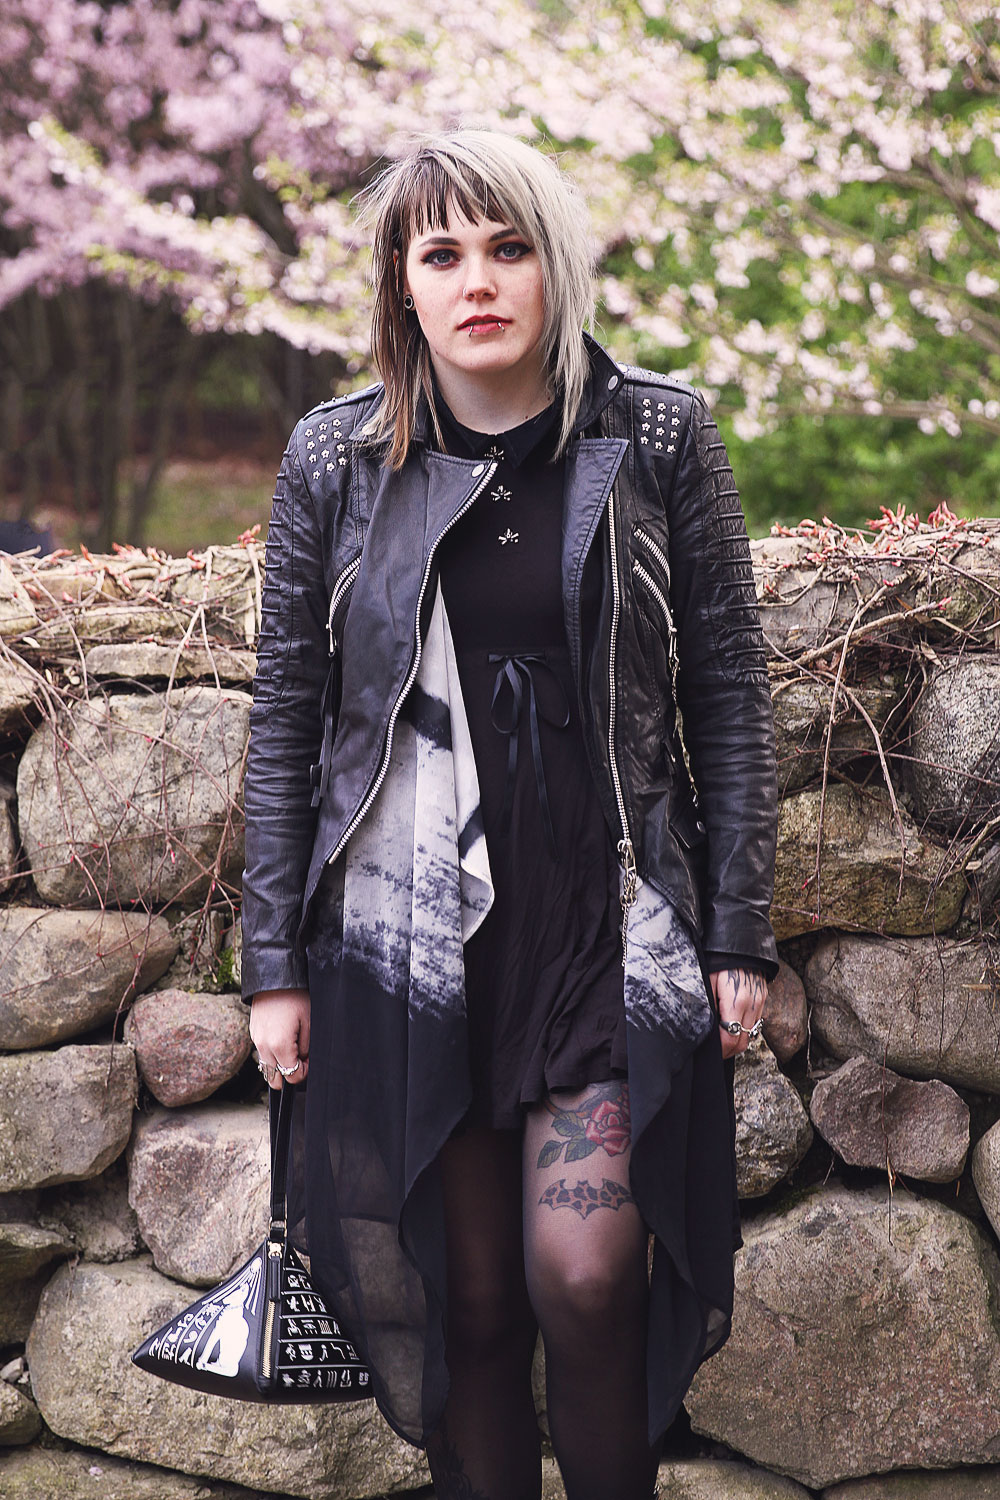 alternative, alternative fashion, alternative girl, altgirl, berlin, berlin fashion, berlin fashion blogger, berlin streetstyle, blogger, fashion blogger, girls with piercings, grunge, grunge fashion, Punk, punk fashion, scenehair, snakebites, punkmädchen, punkgirl, alternative mode, berlin mode, cherry blossom, kirschblüte, hanami, kirschblütenfest, cherry blossom festival, sakura, killstar, doom dress, limecrime, limecrime riot, pyramid bag, unif, trench boot, platform, plateau, h&m, cardican, chiffon, freaky nation, lederjacke, leder, echtleder, leather, skull, skull buttons, totenkopf, totenkopf knopf, tattoos